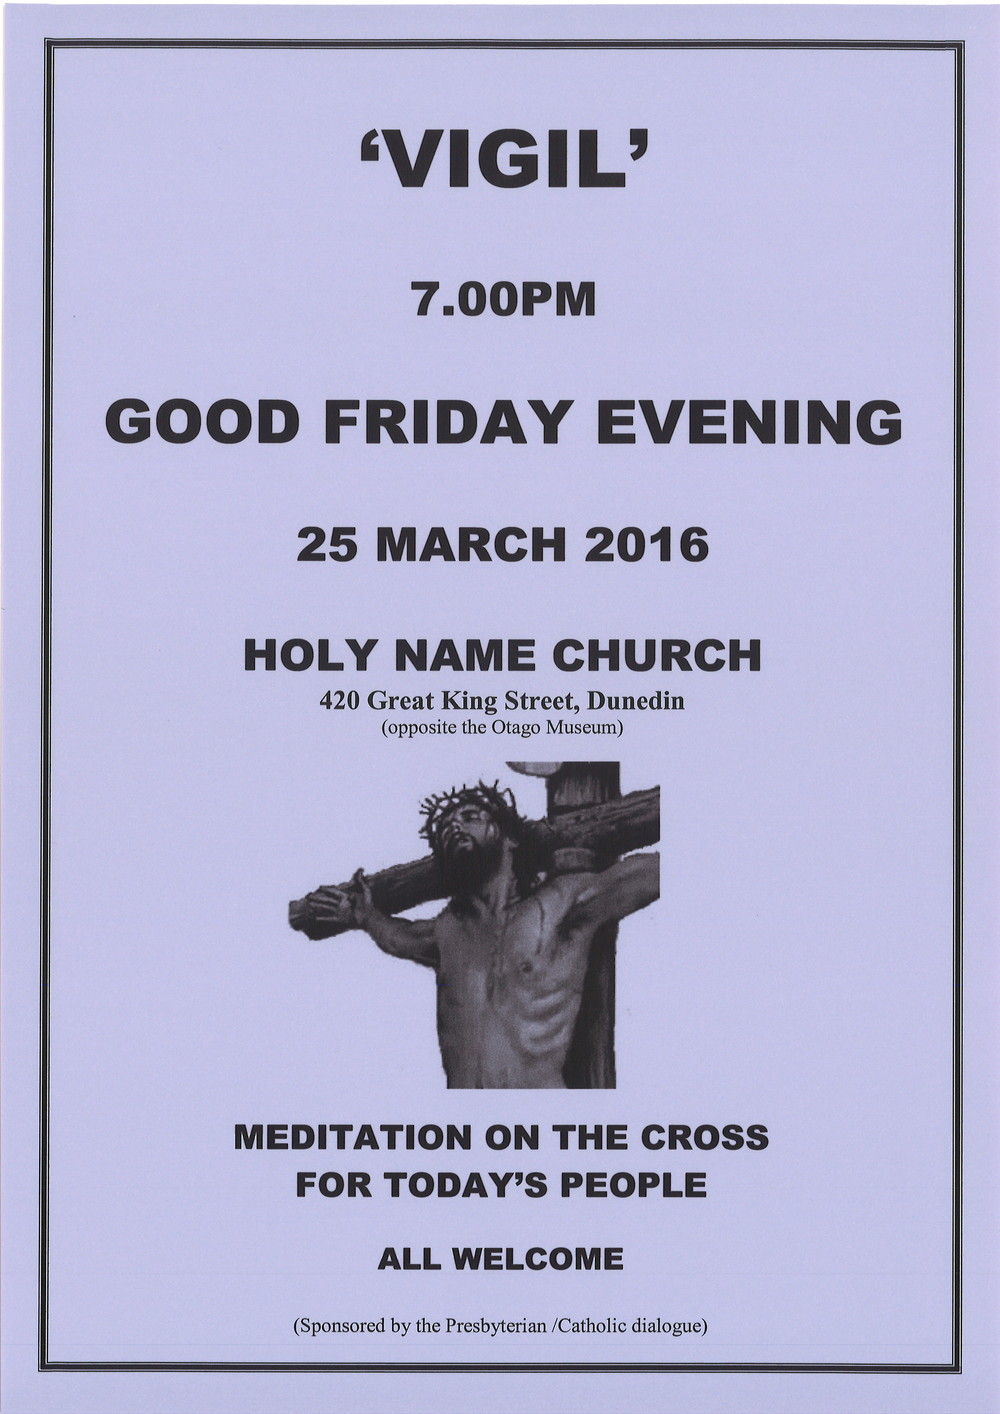 Good Friday Vigil